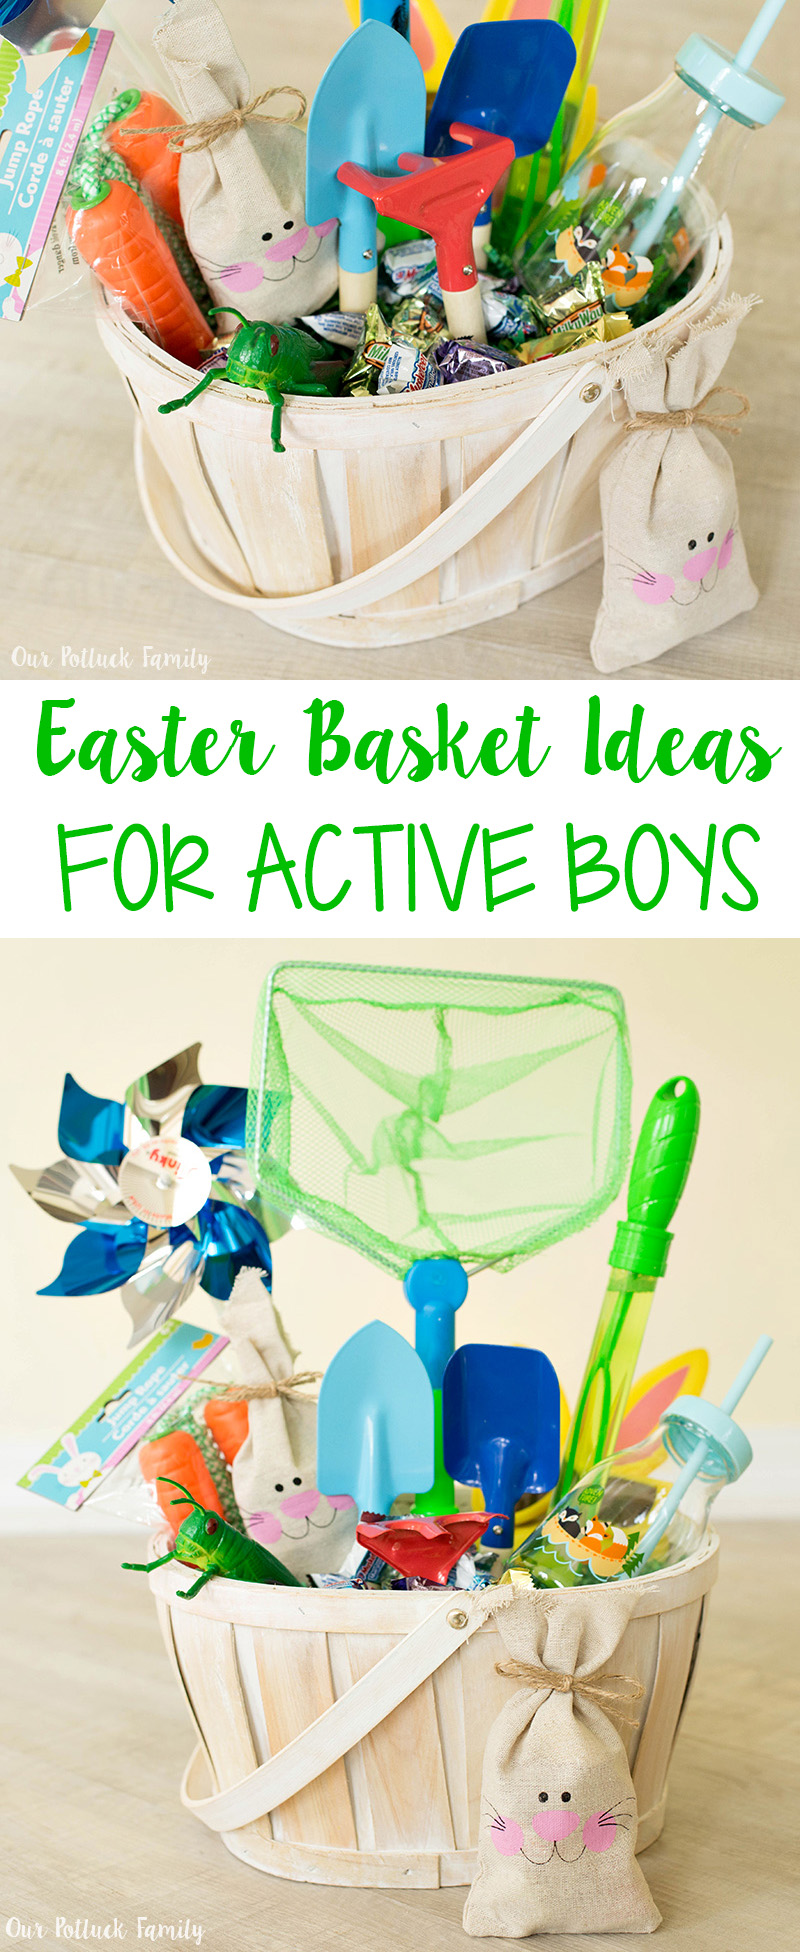 Easter basket for active boys our potluck family pin this easter basket for active boys idea negle Image collections